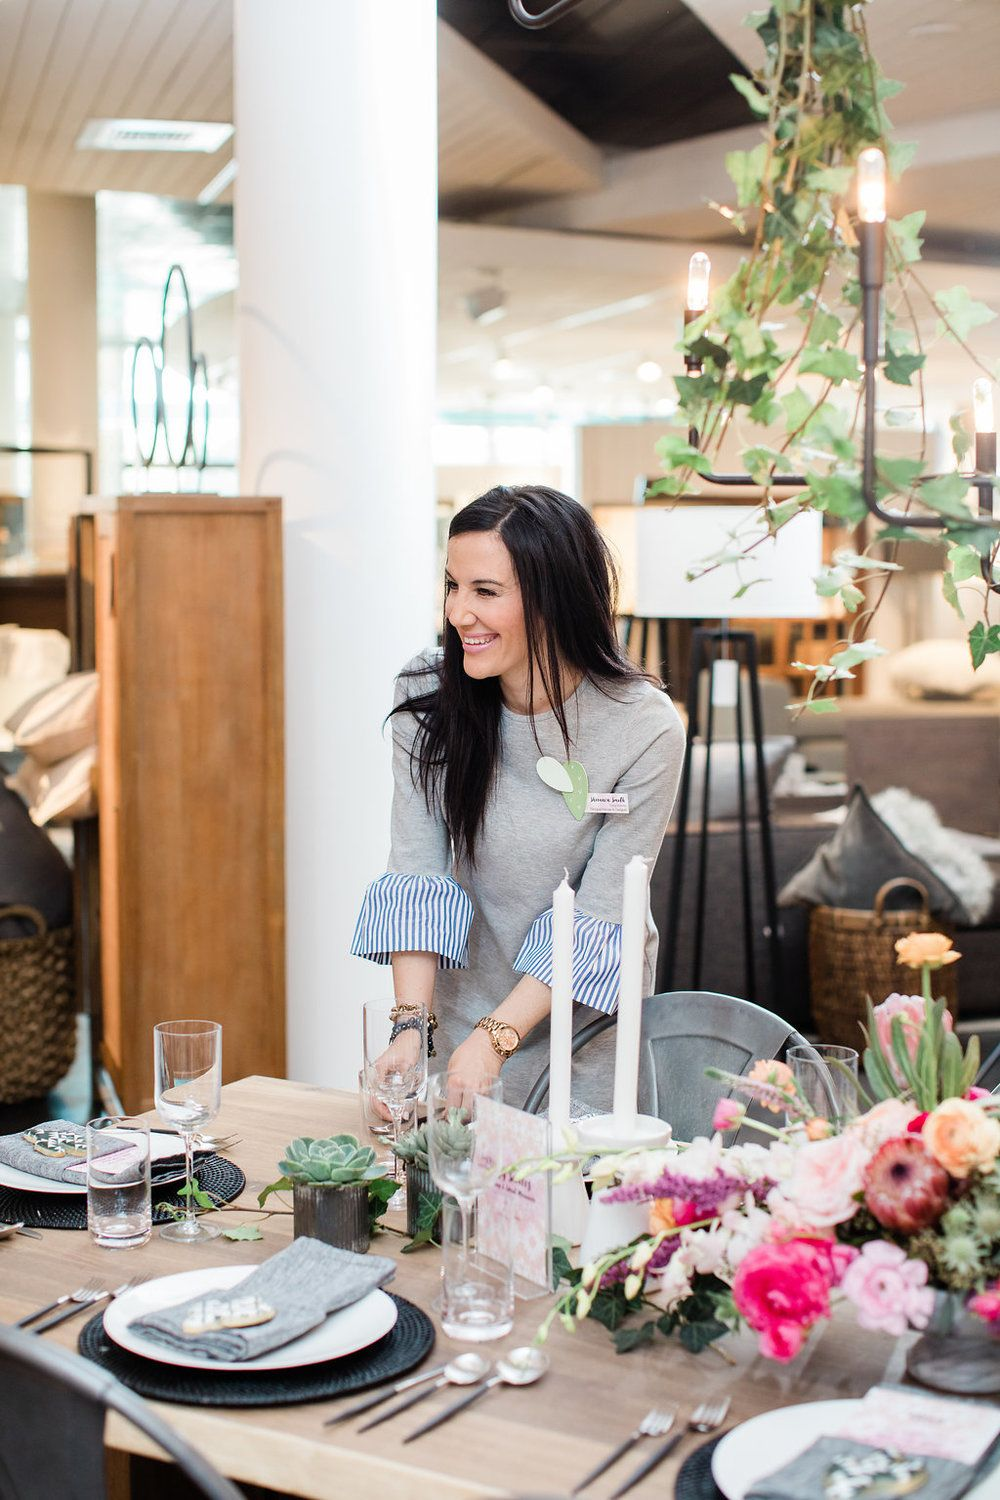 Wedding Registry Event with Crate and Barrel Affordable